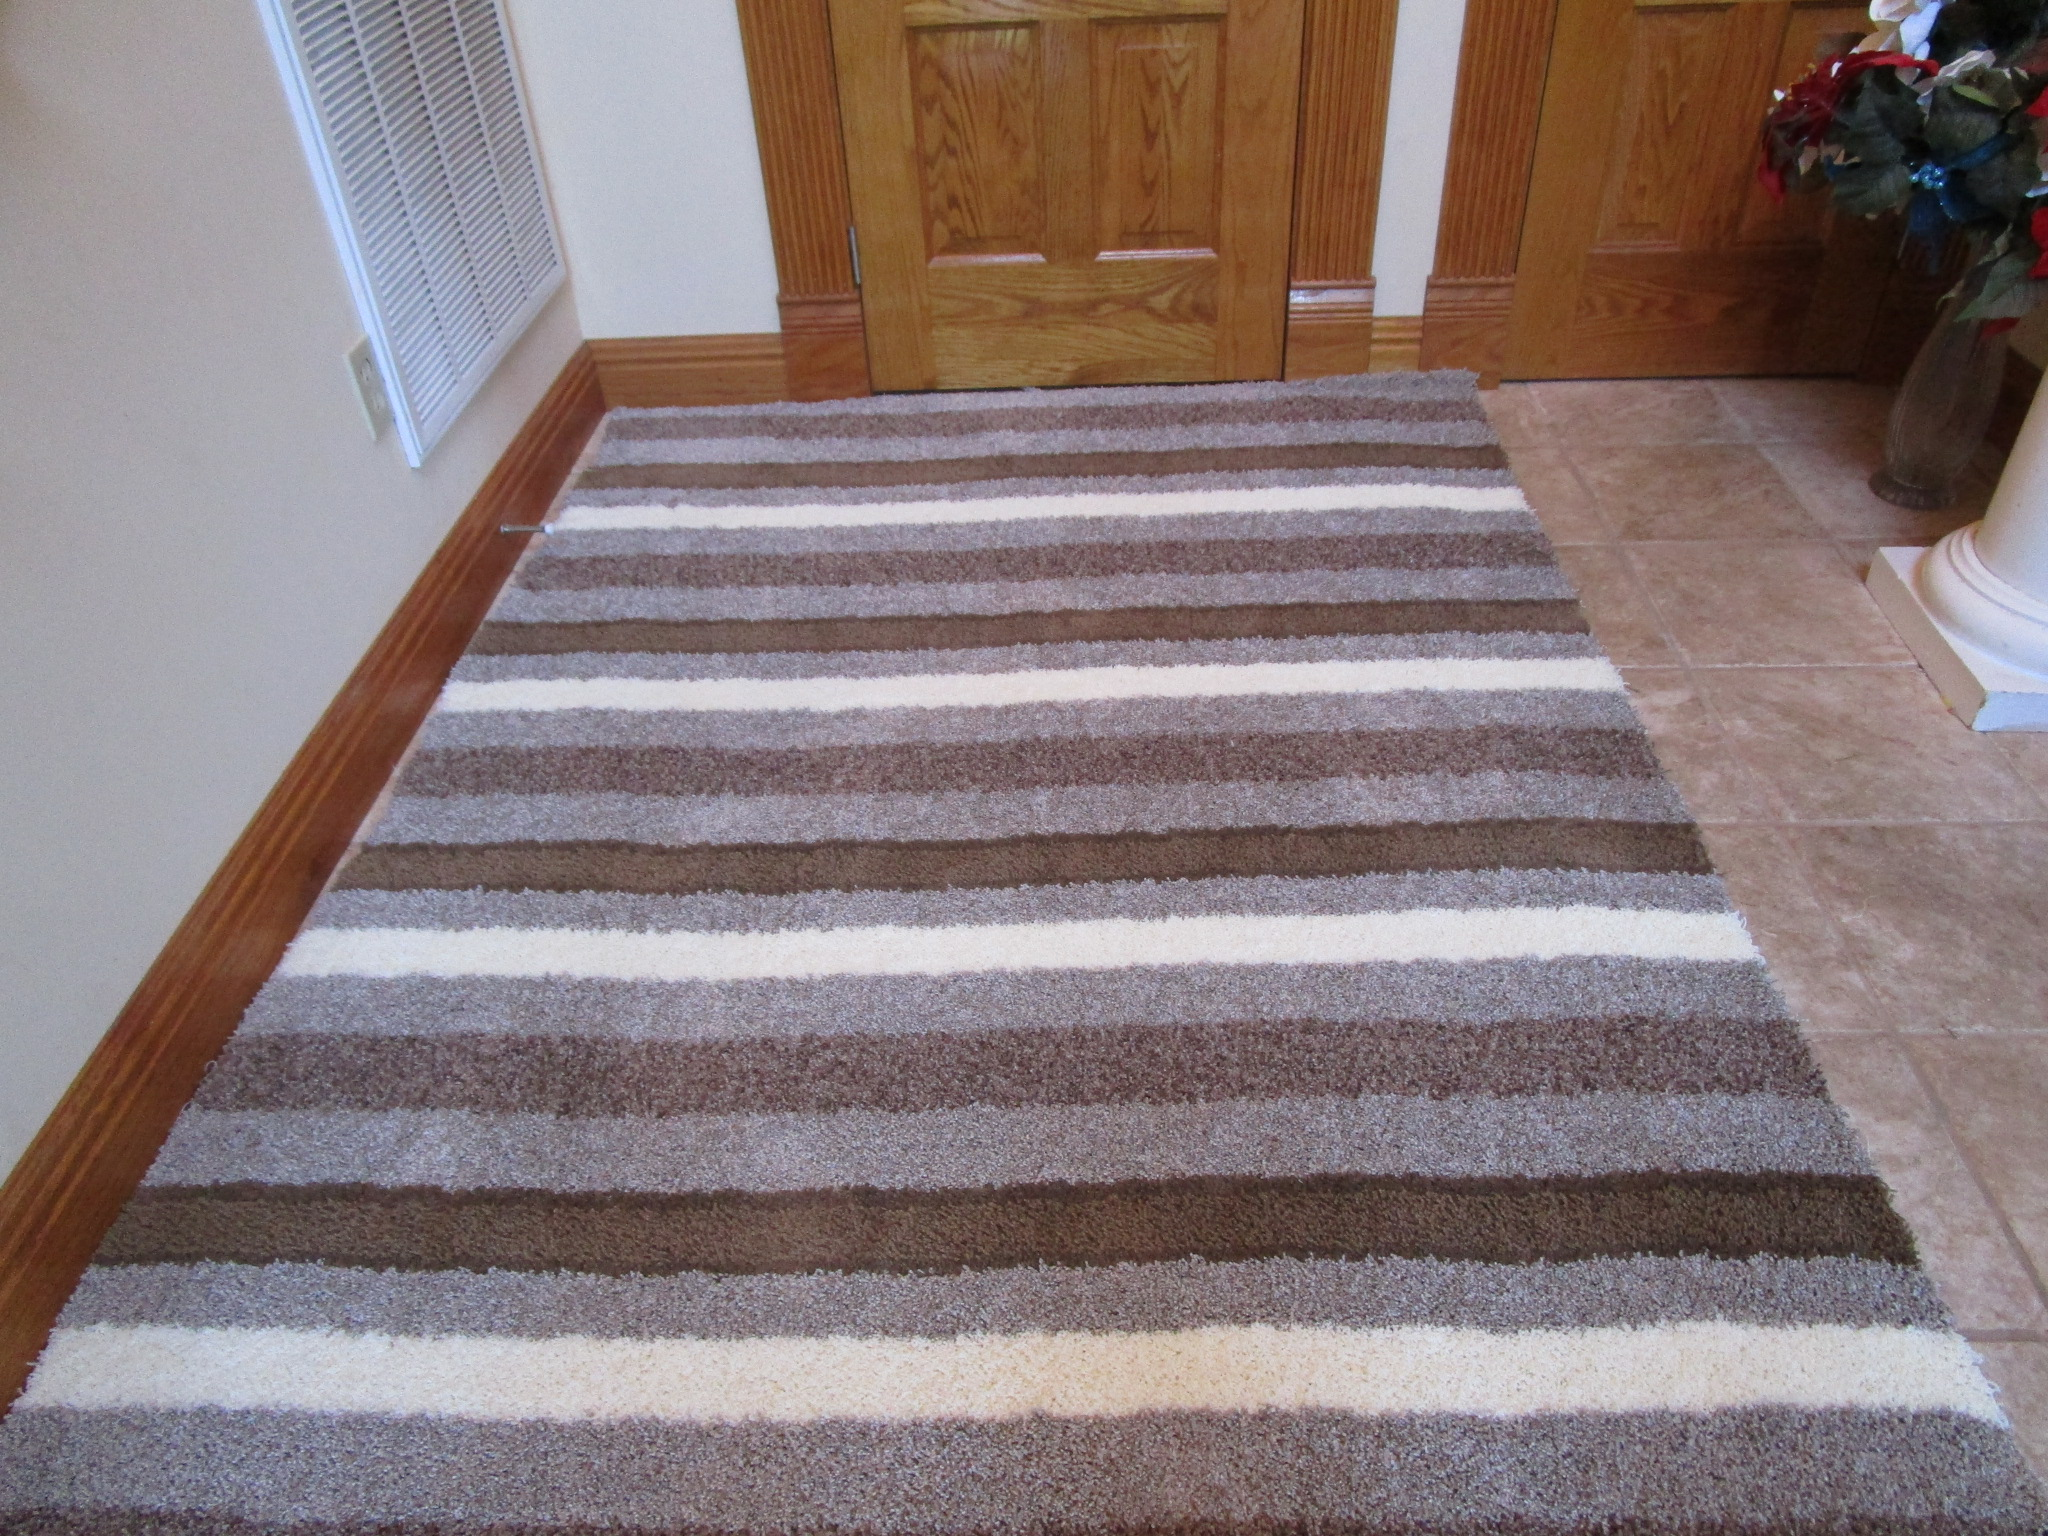 Cosmopolitian Earth Stripes Large Rugs Available